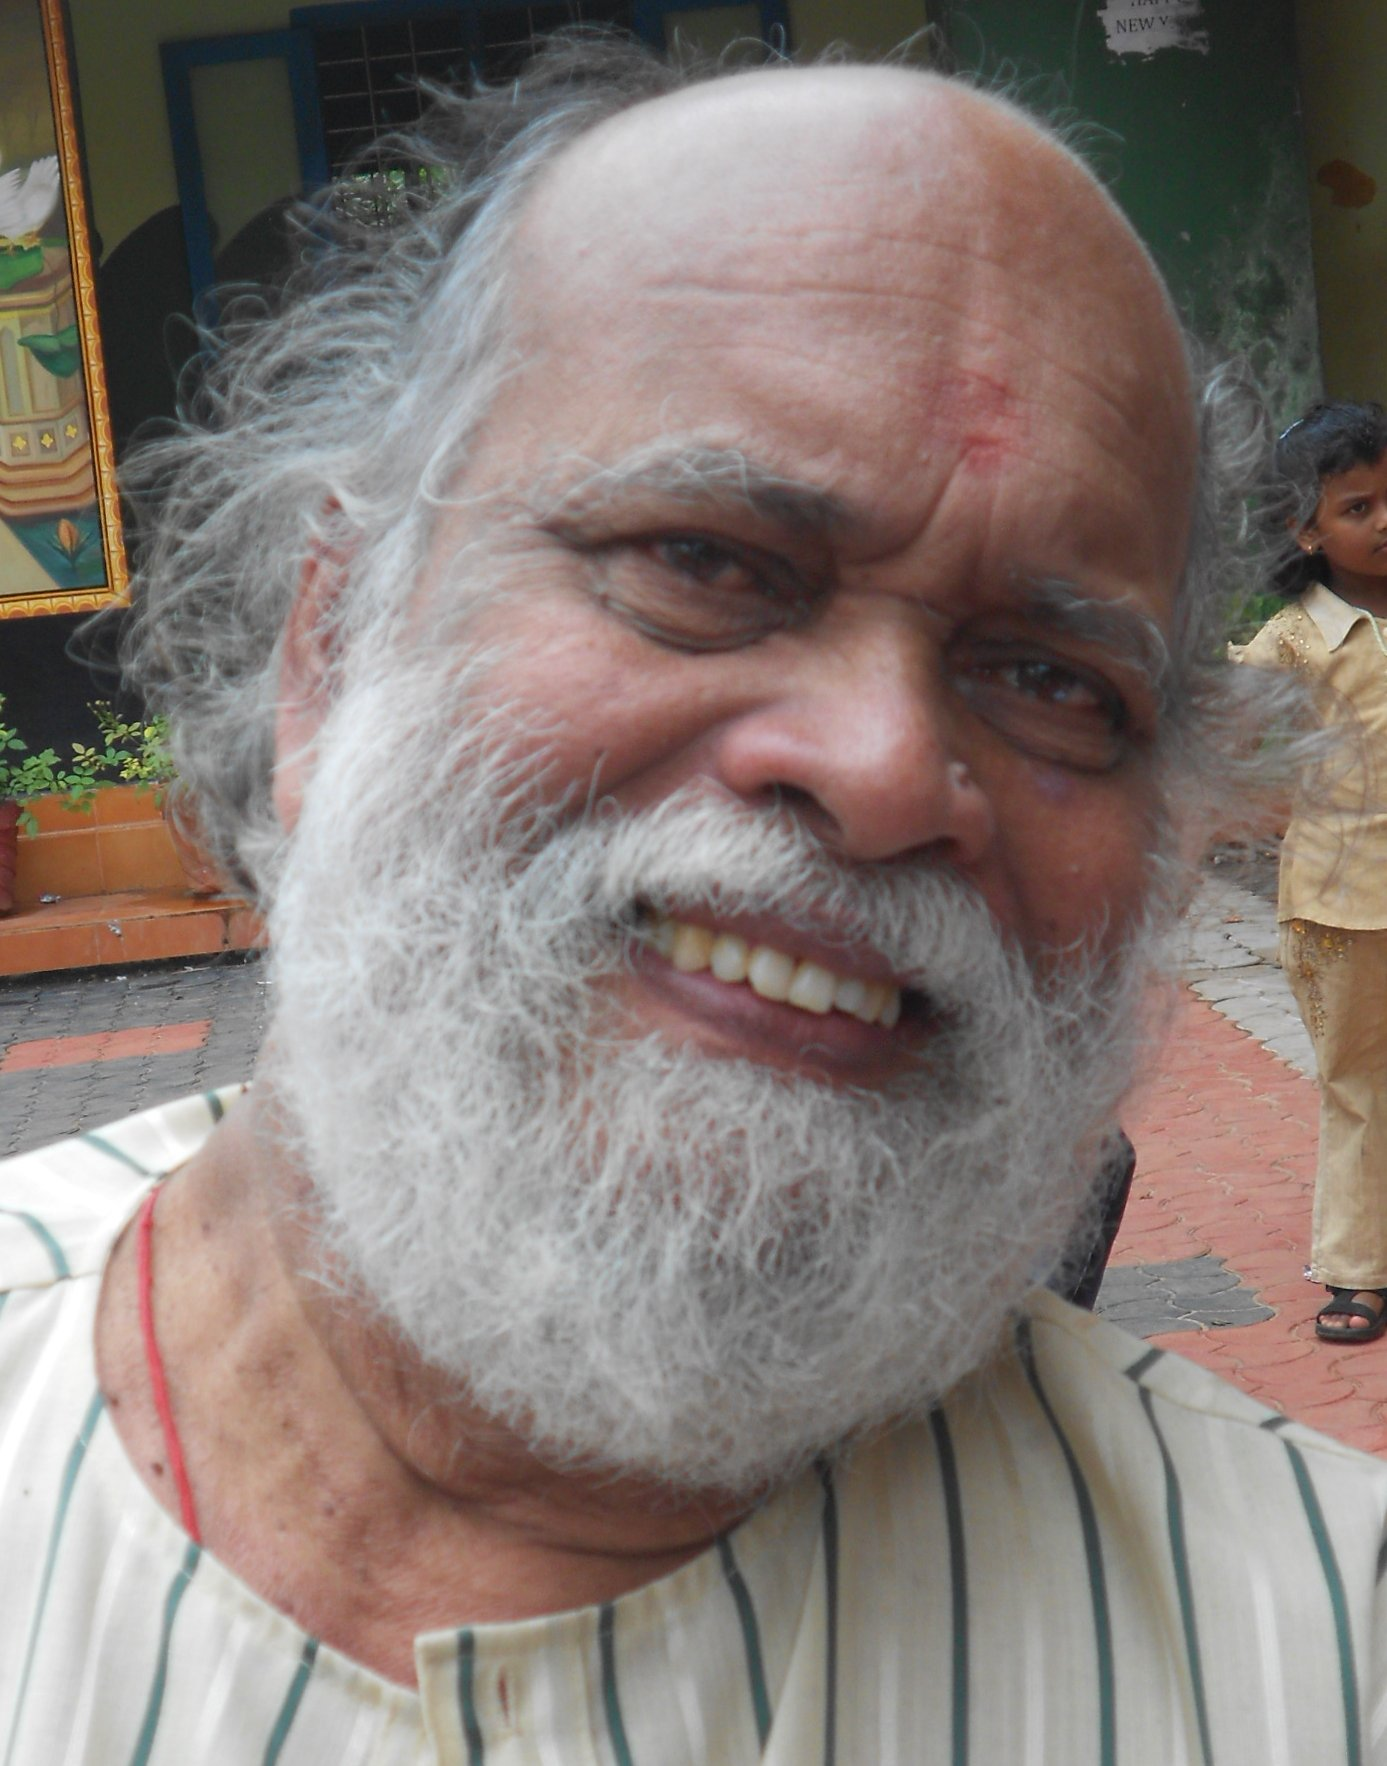 Image of N. L. Balakrishnan from Wikidata